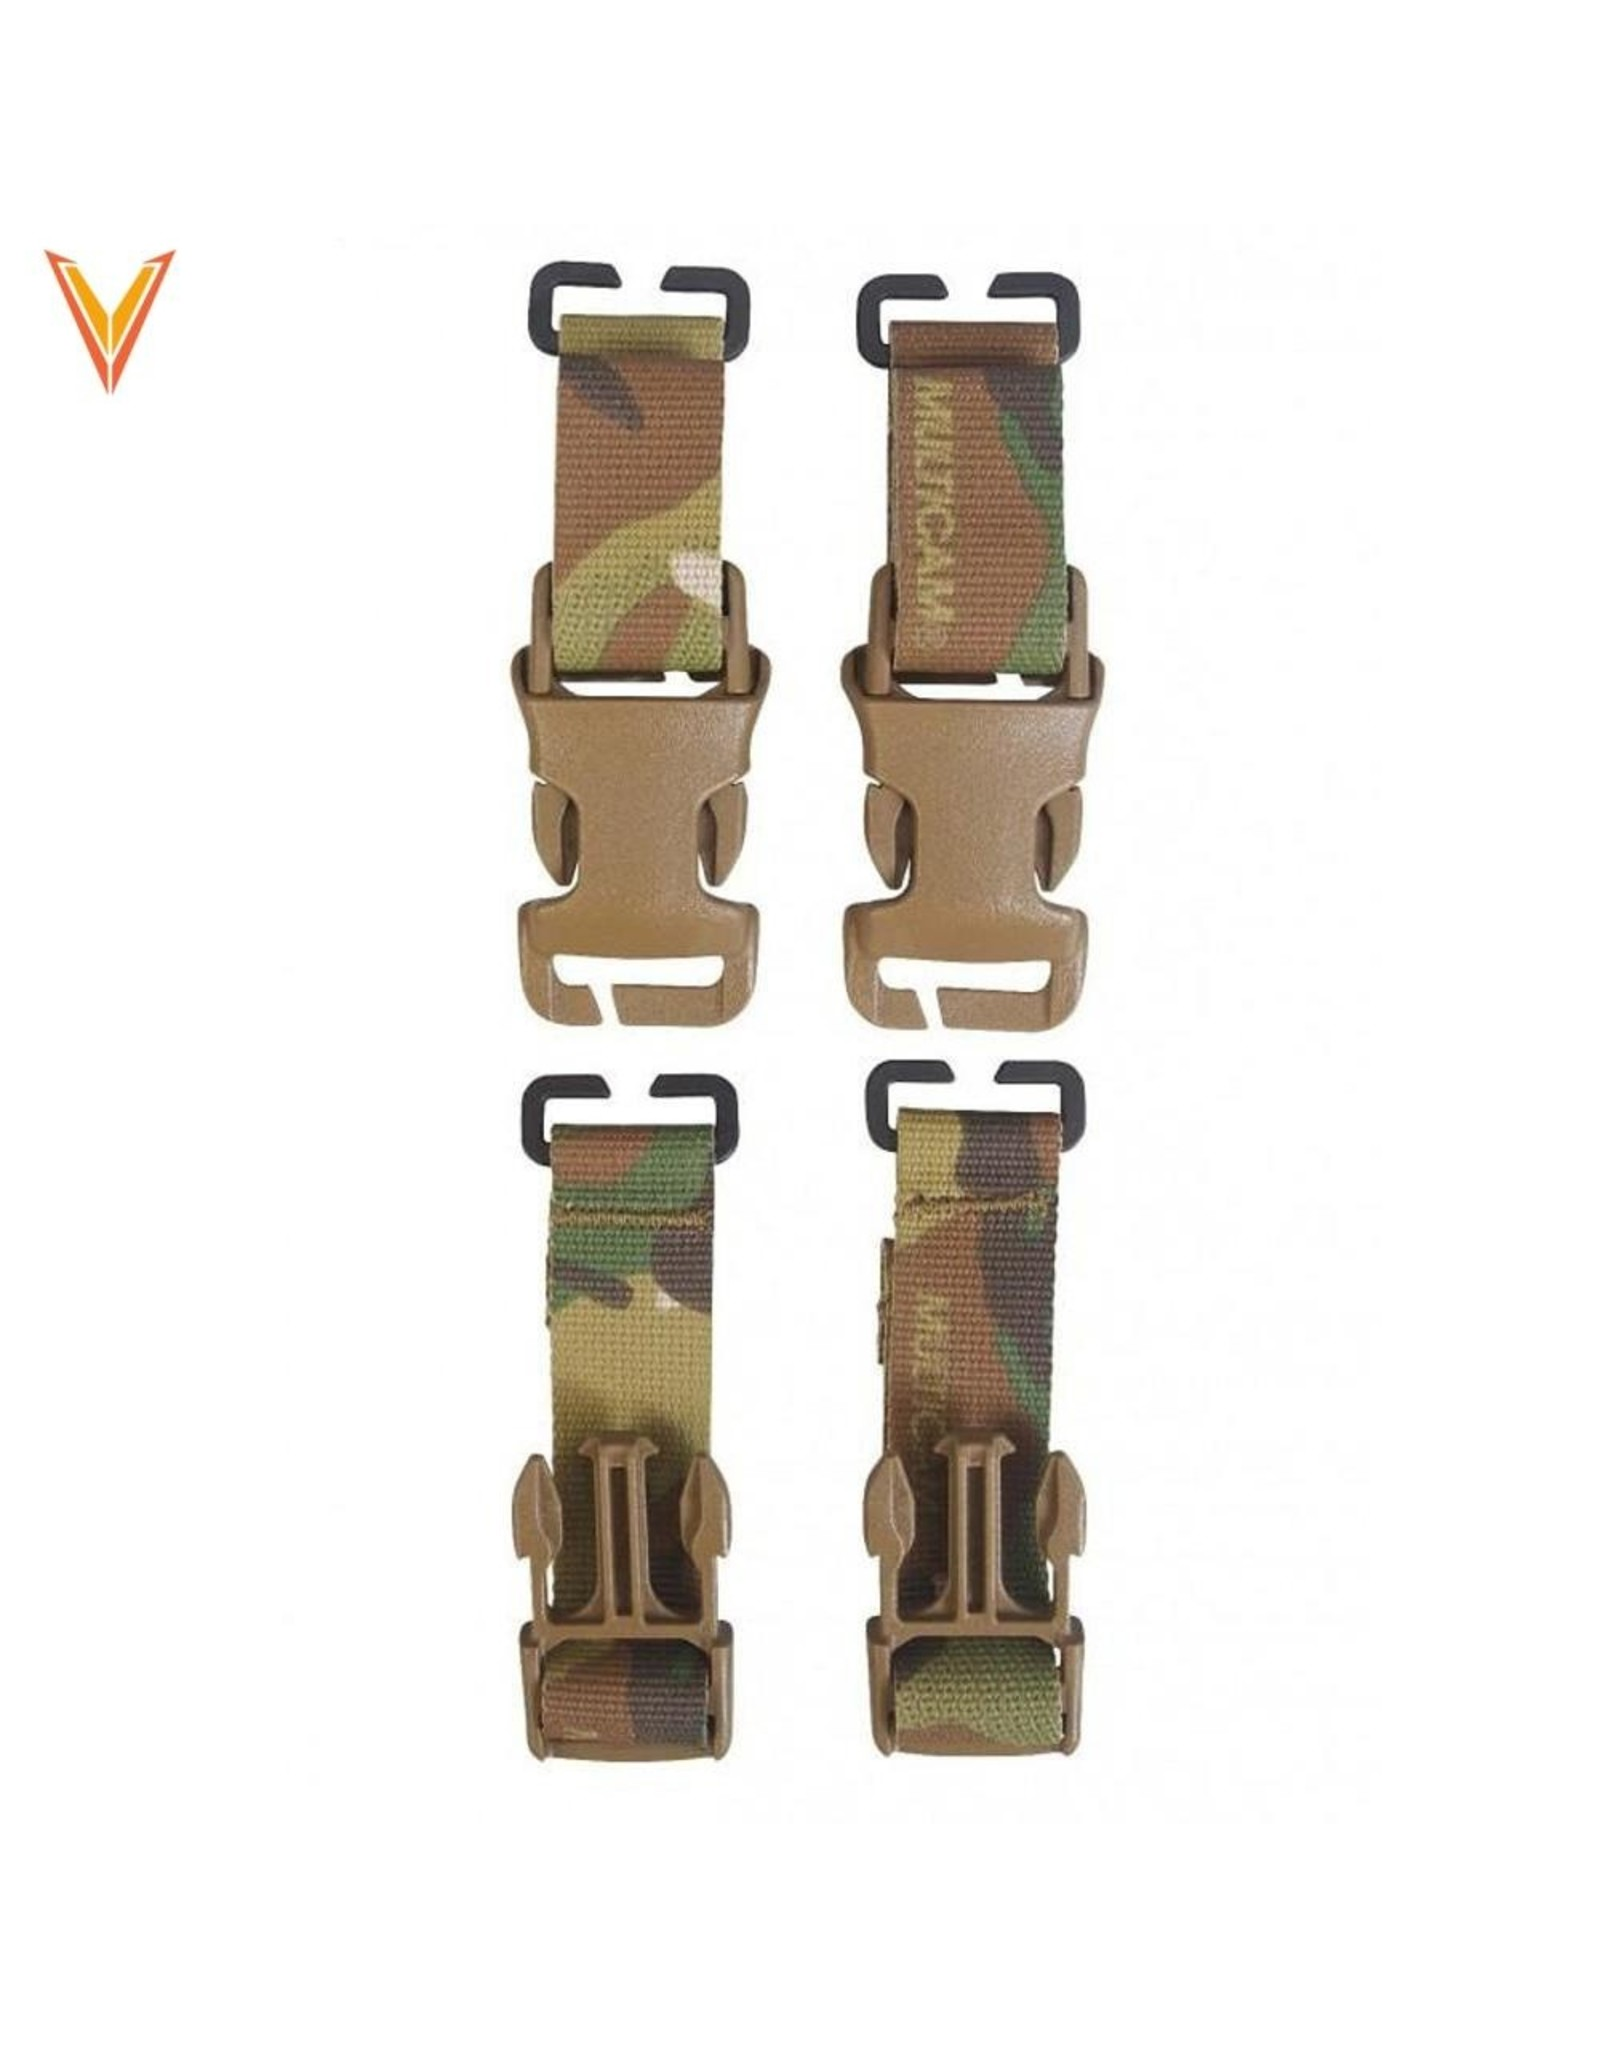 VELOCITY SYSTEMS SWIFTCLIP